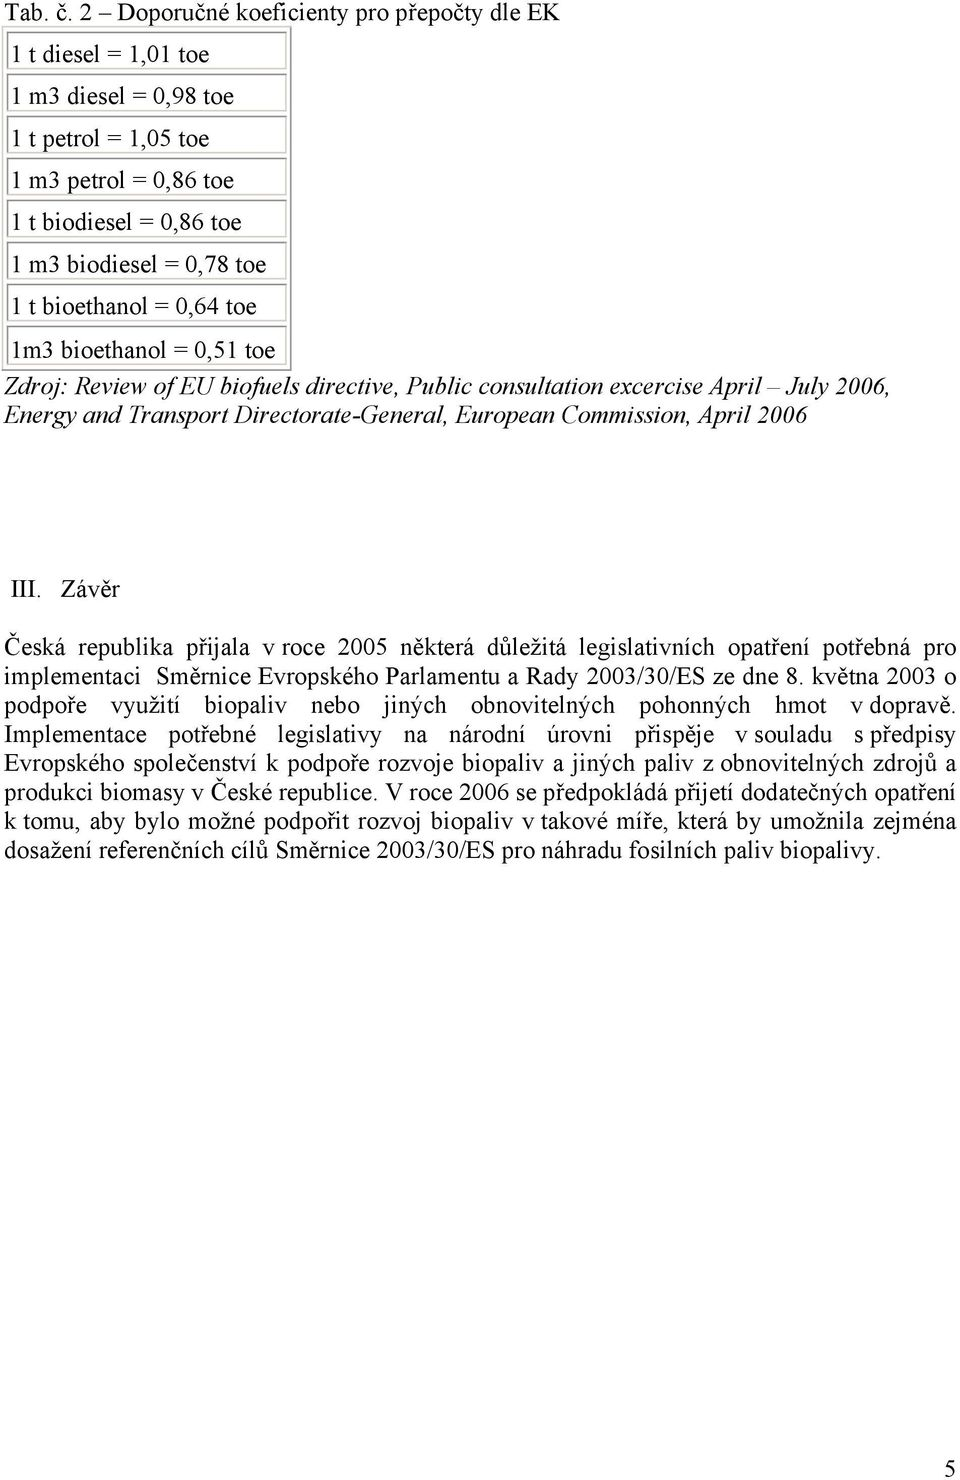 = 0,64 toe 1m3 bioethanol = 0,51 toe Zdroj: Review of EU biofuels directive, Public consultation excercise April July 2006, Energy and Transport Directorate-General, European Commission, April 2006